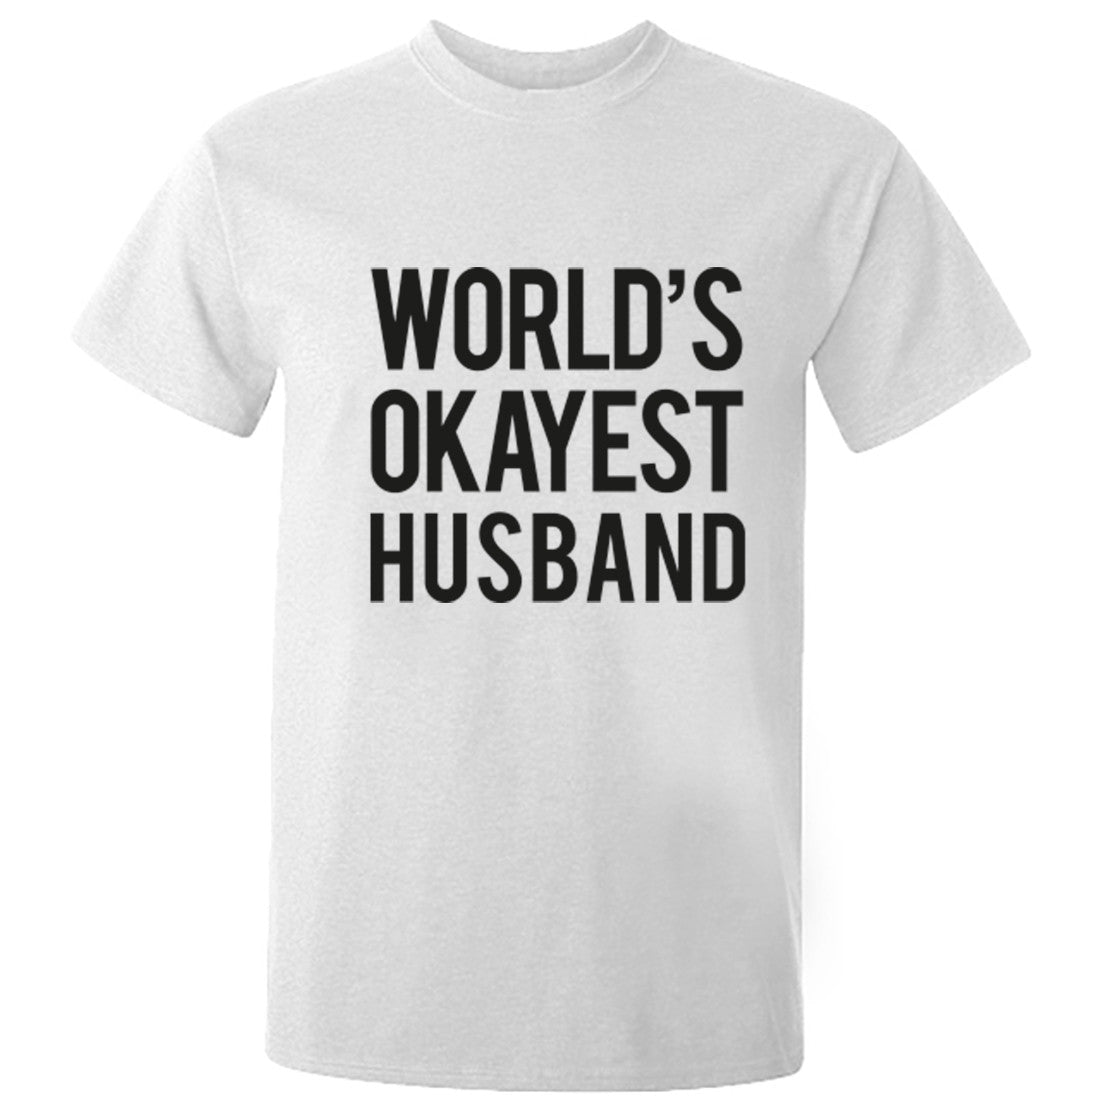 Worlds Okayest Husband Unisex Fit T-Shirt K0480